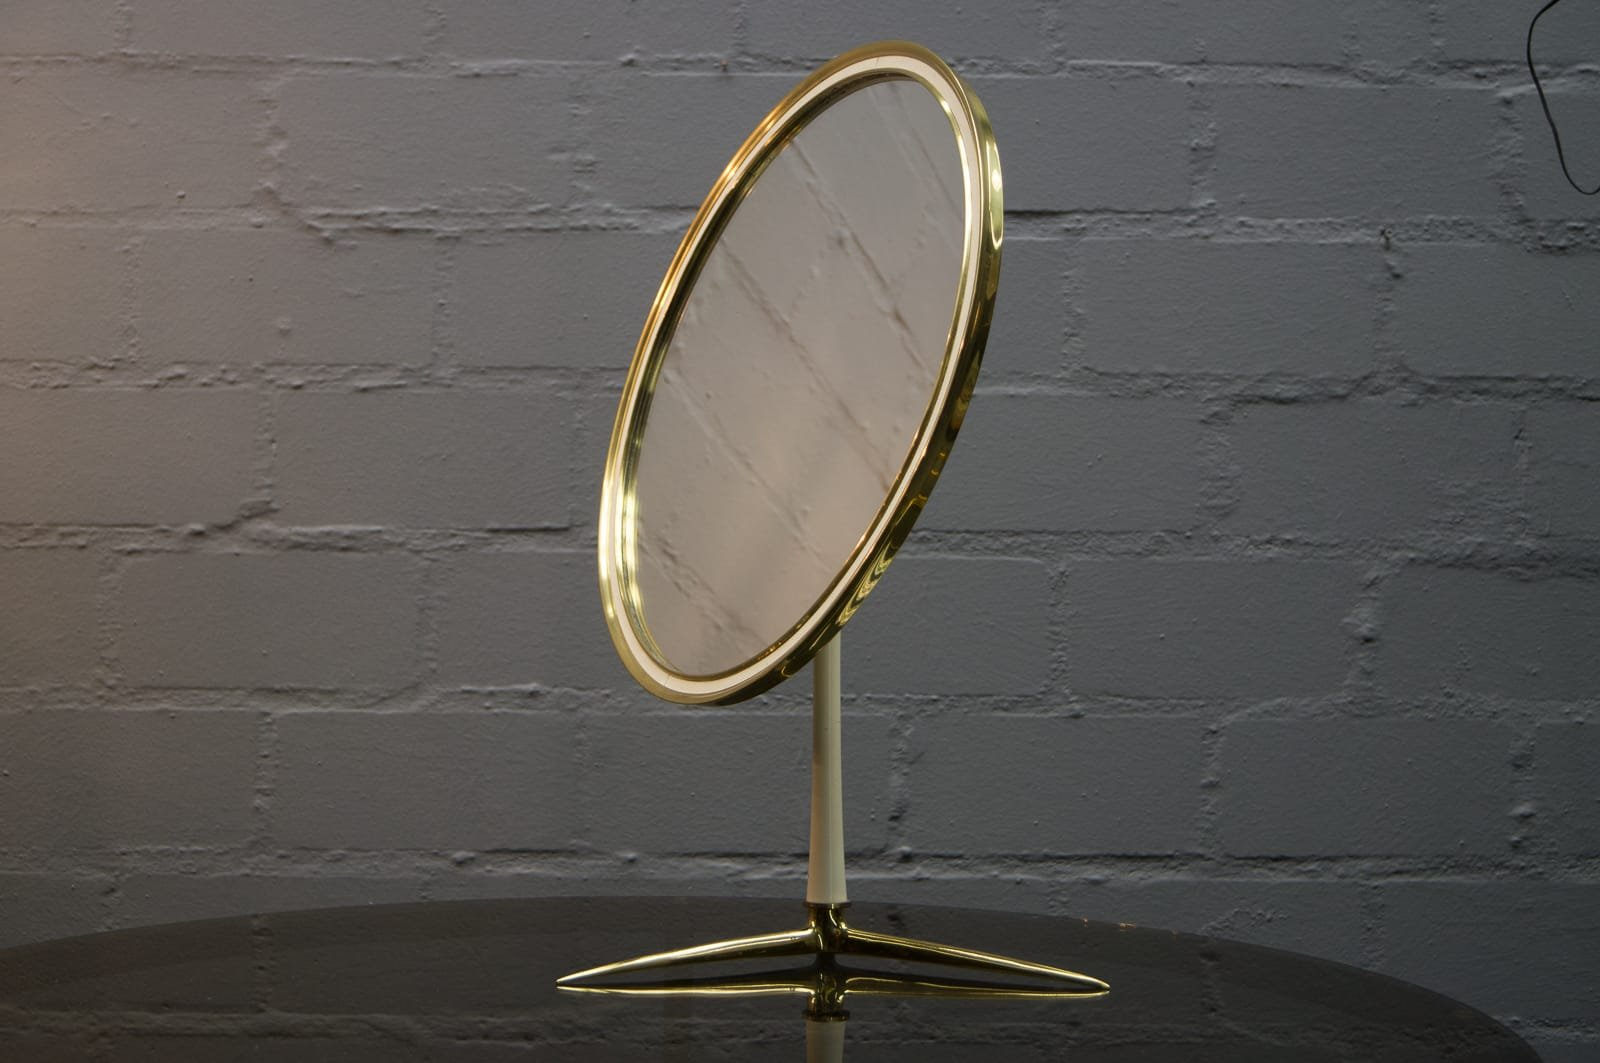 round vanity table mirror from vereinigte werkst tten 1950s for sale at pamono. Black Bedroom Furniture Sets. Home Design Ideas